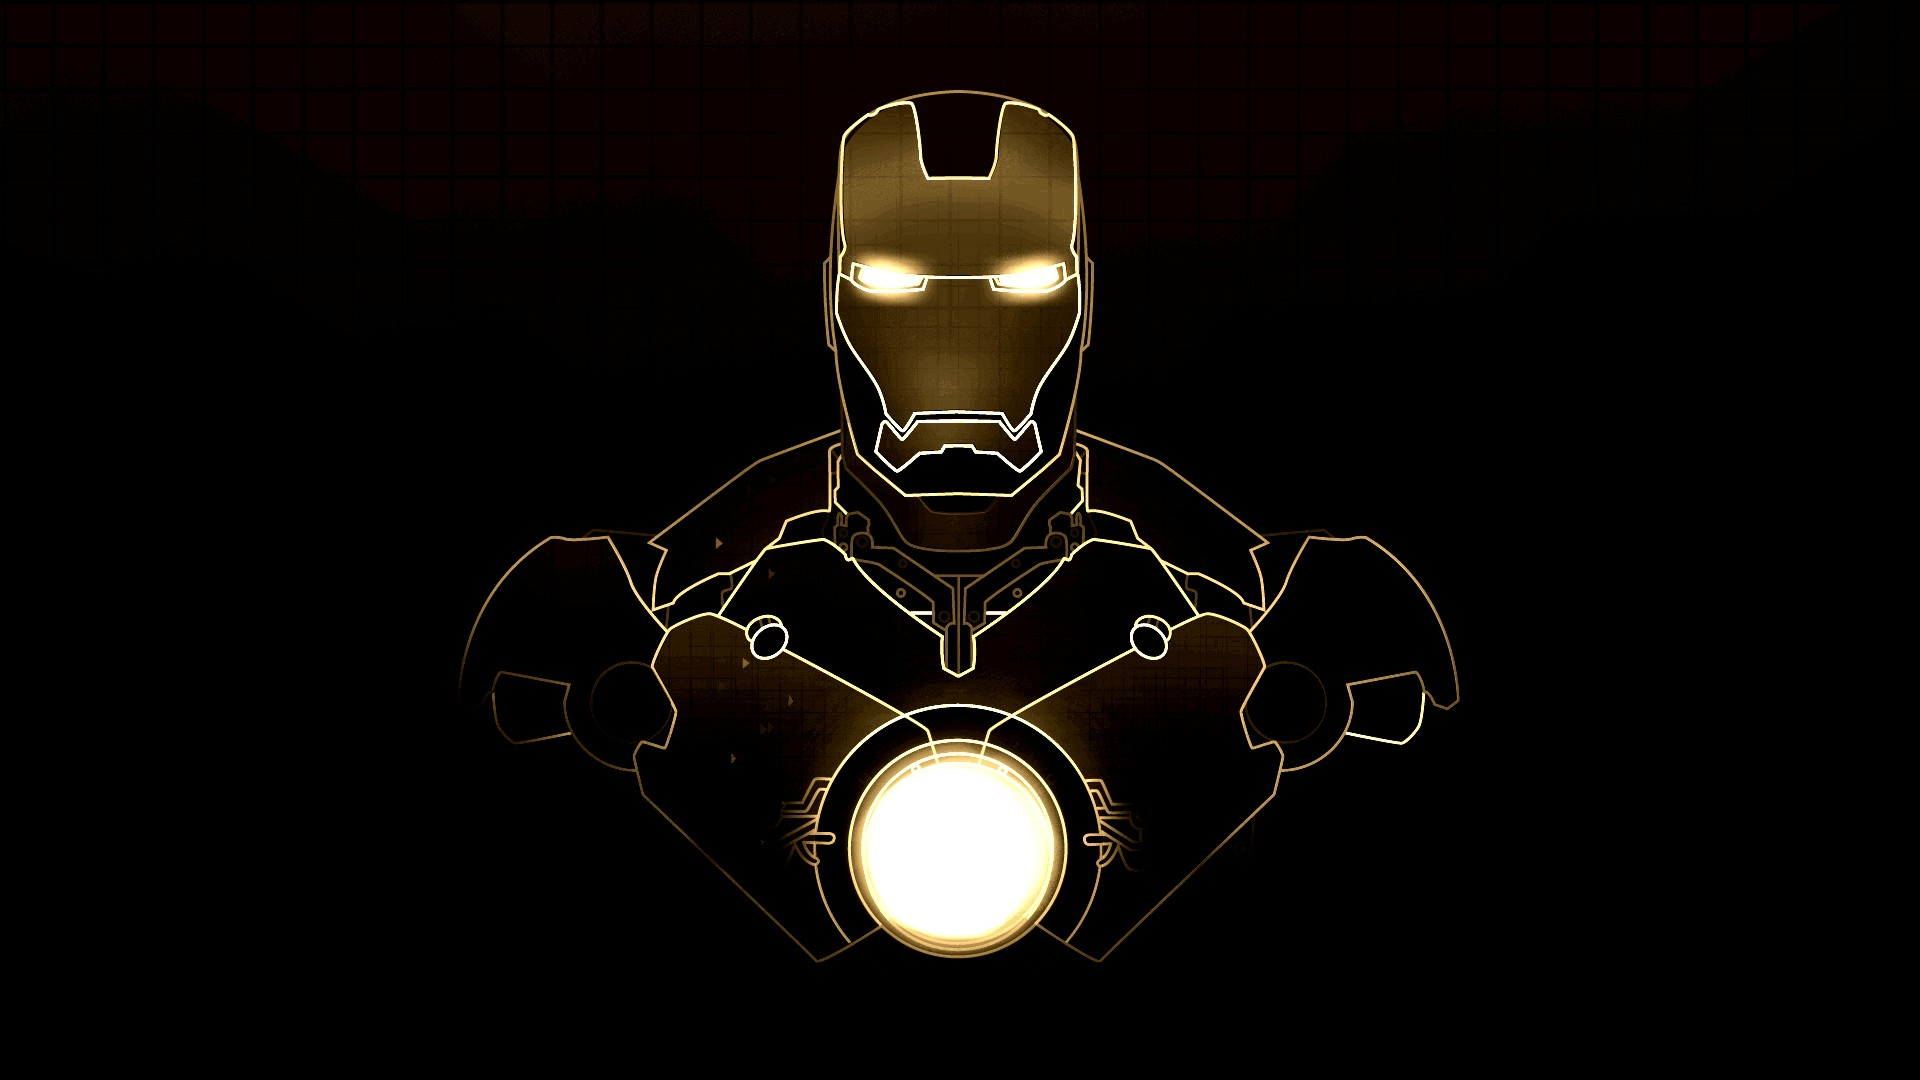 Iron Man Hd Wallpapers Pictures Images